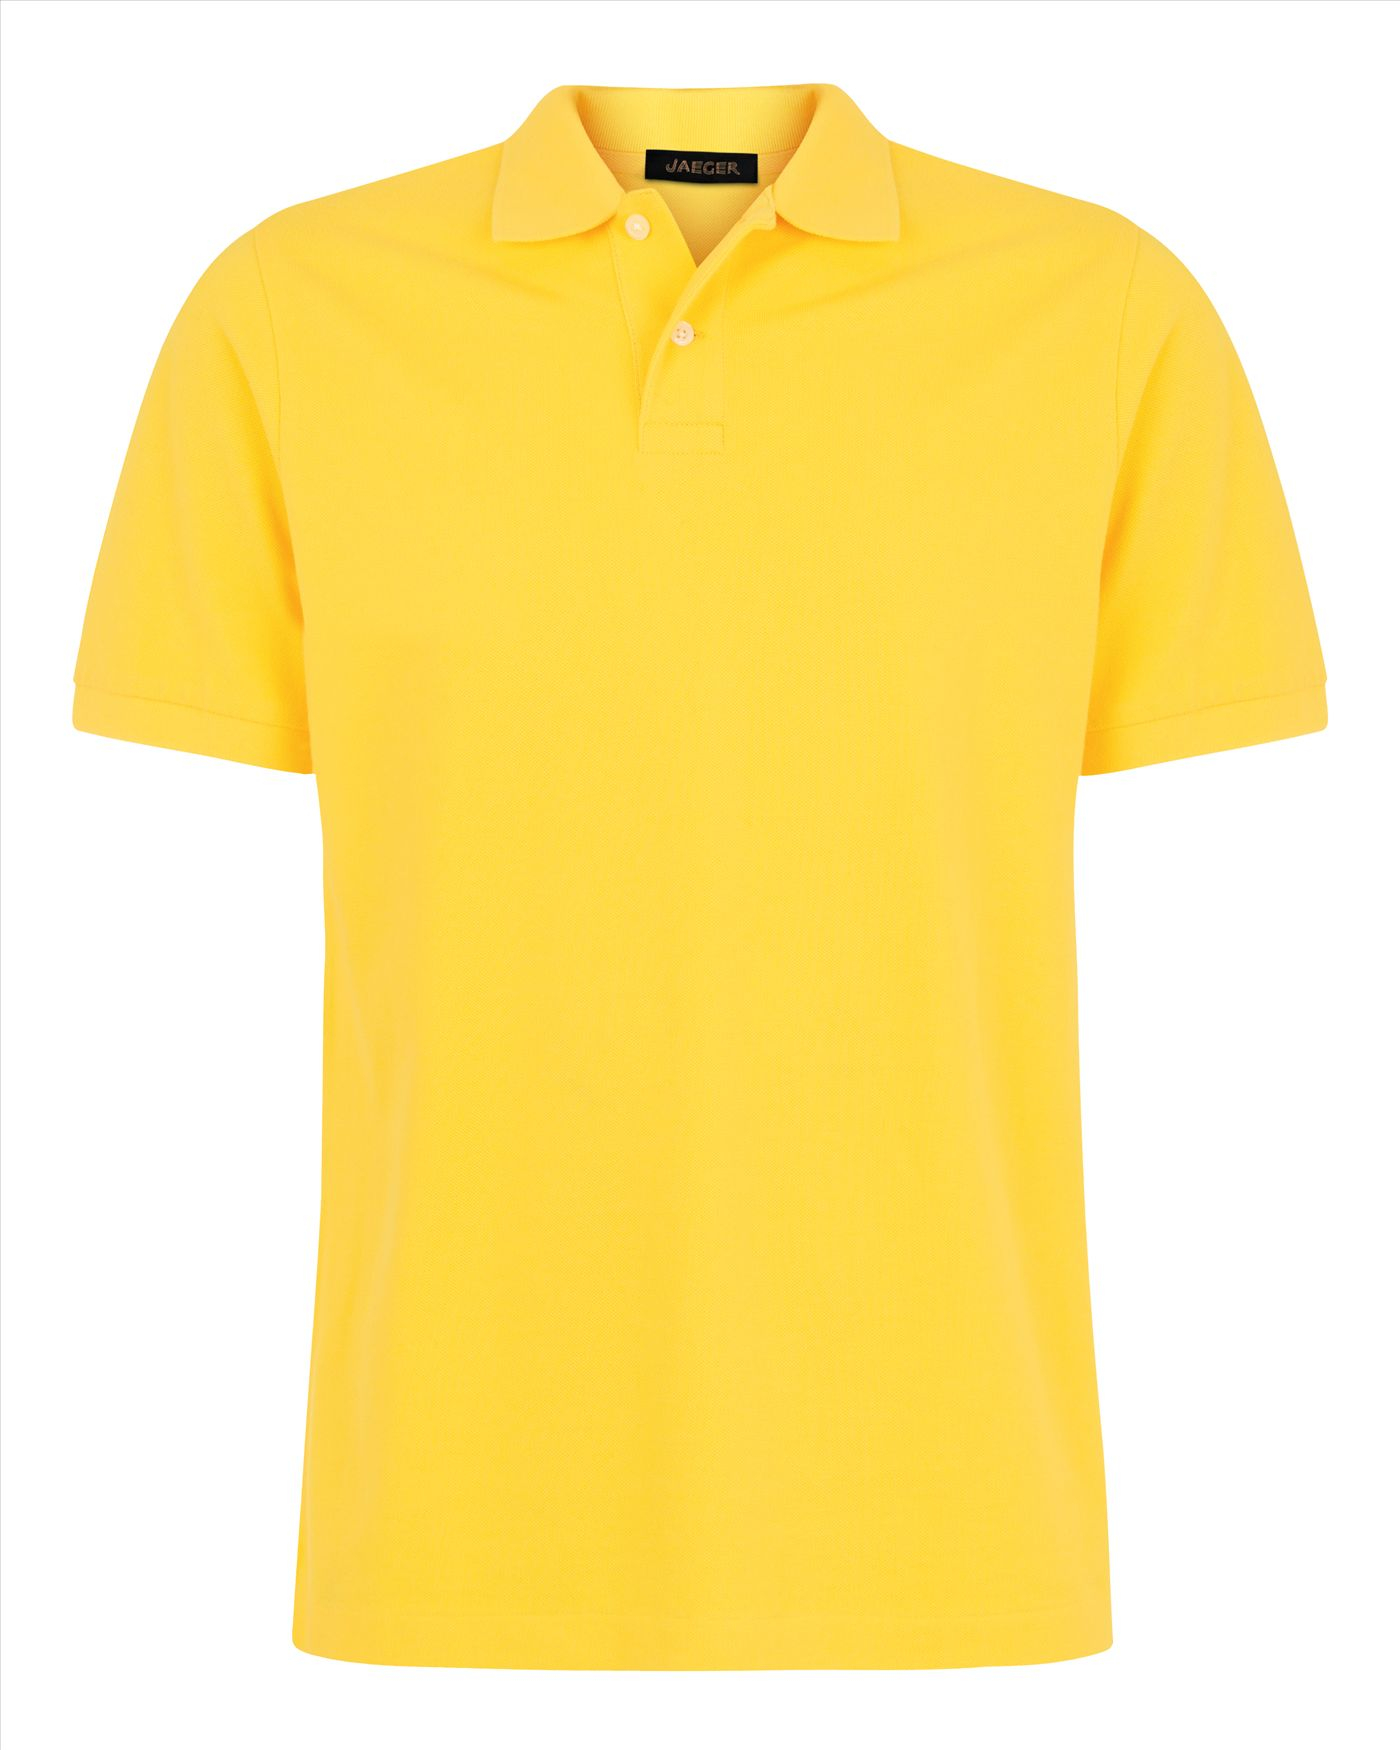 c975fcbc ... where to buy lyst jaeger plain pique polo shirt in yellow for men 4bcec  e6538